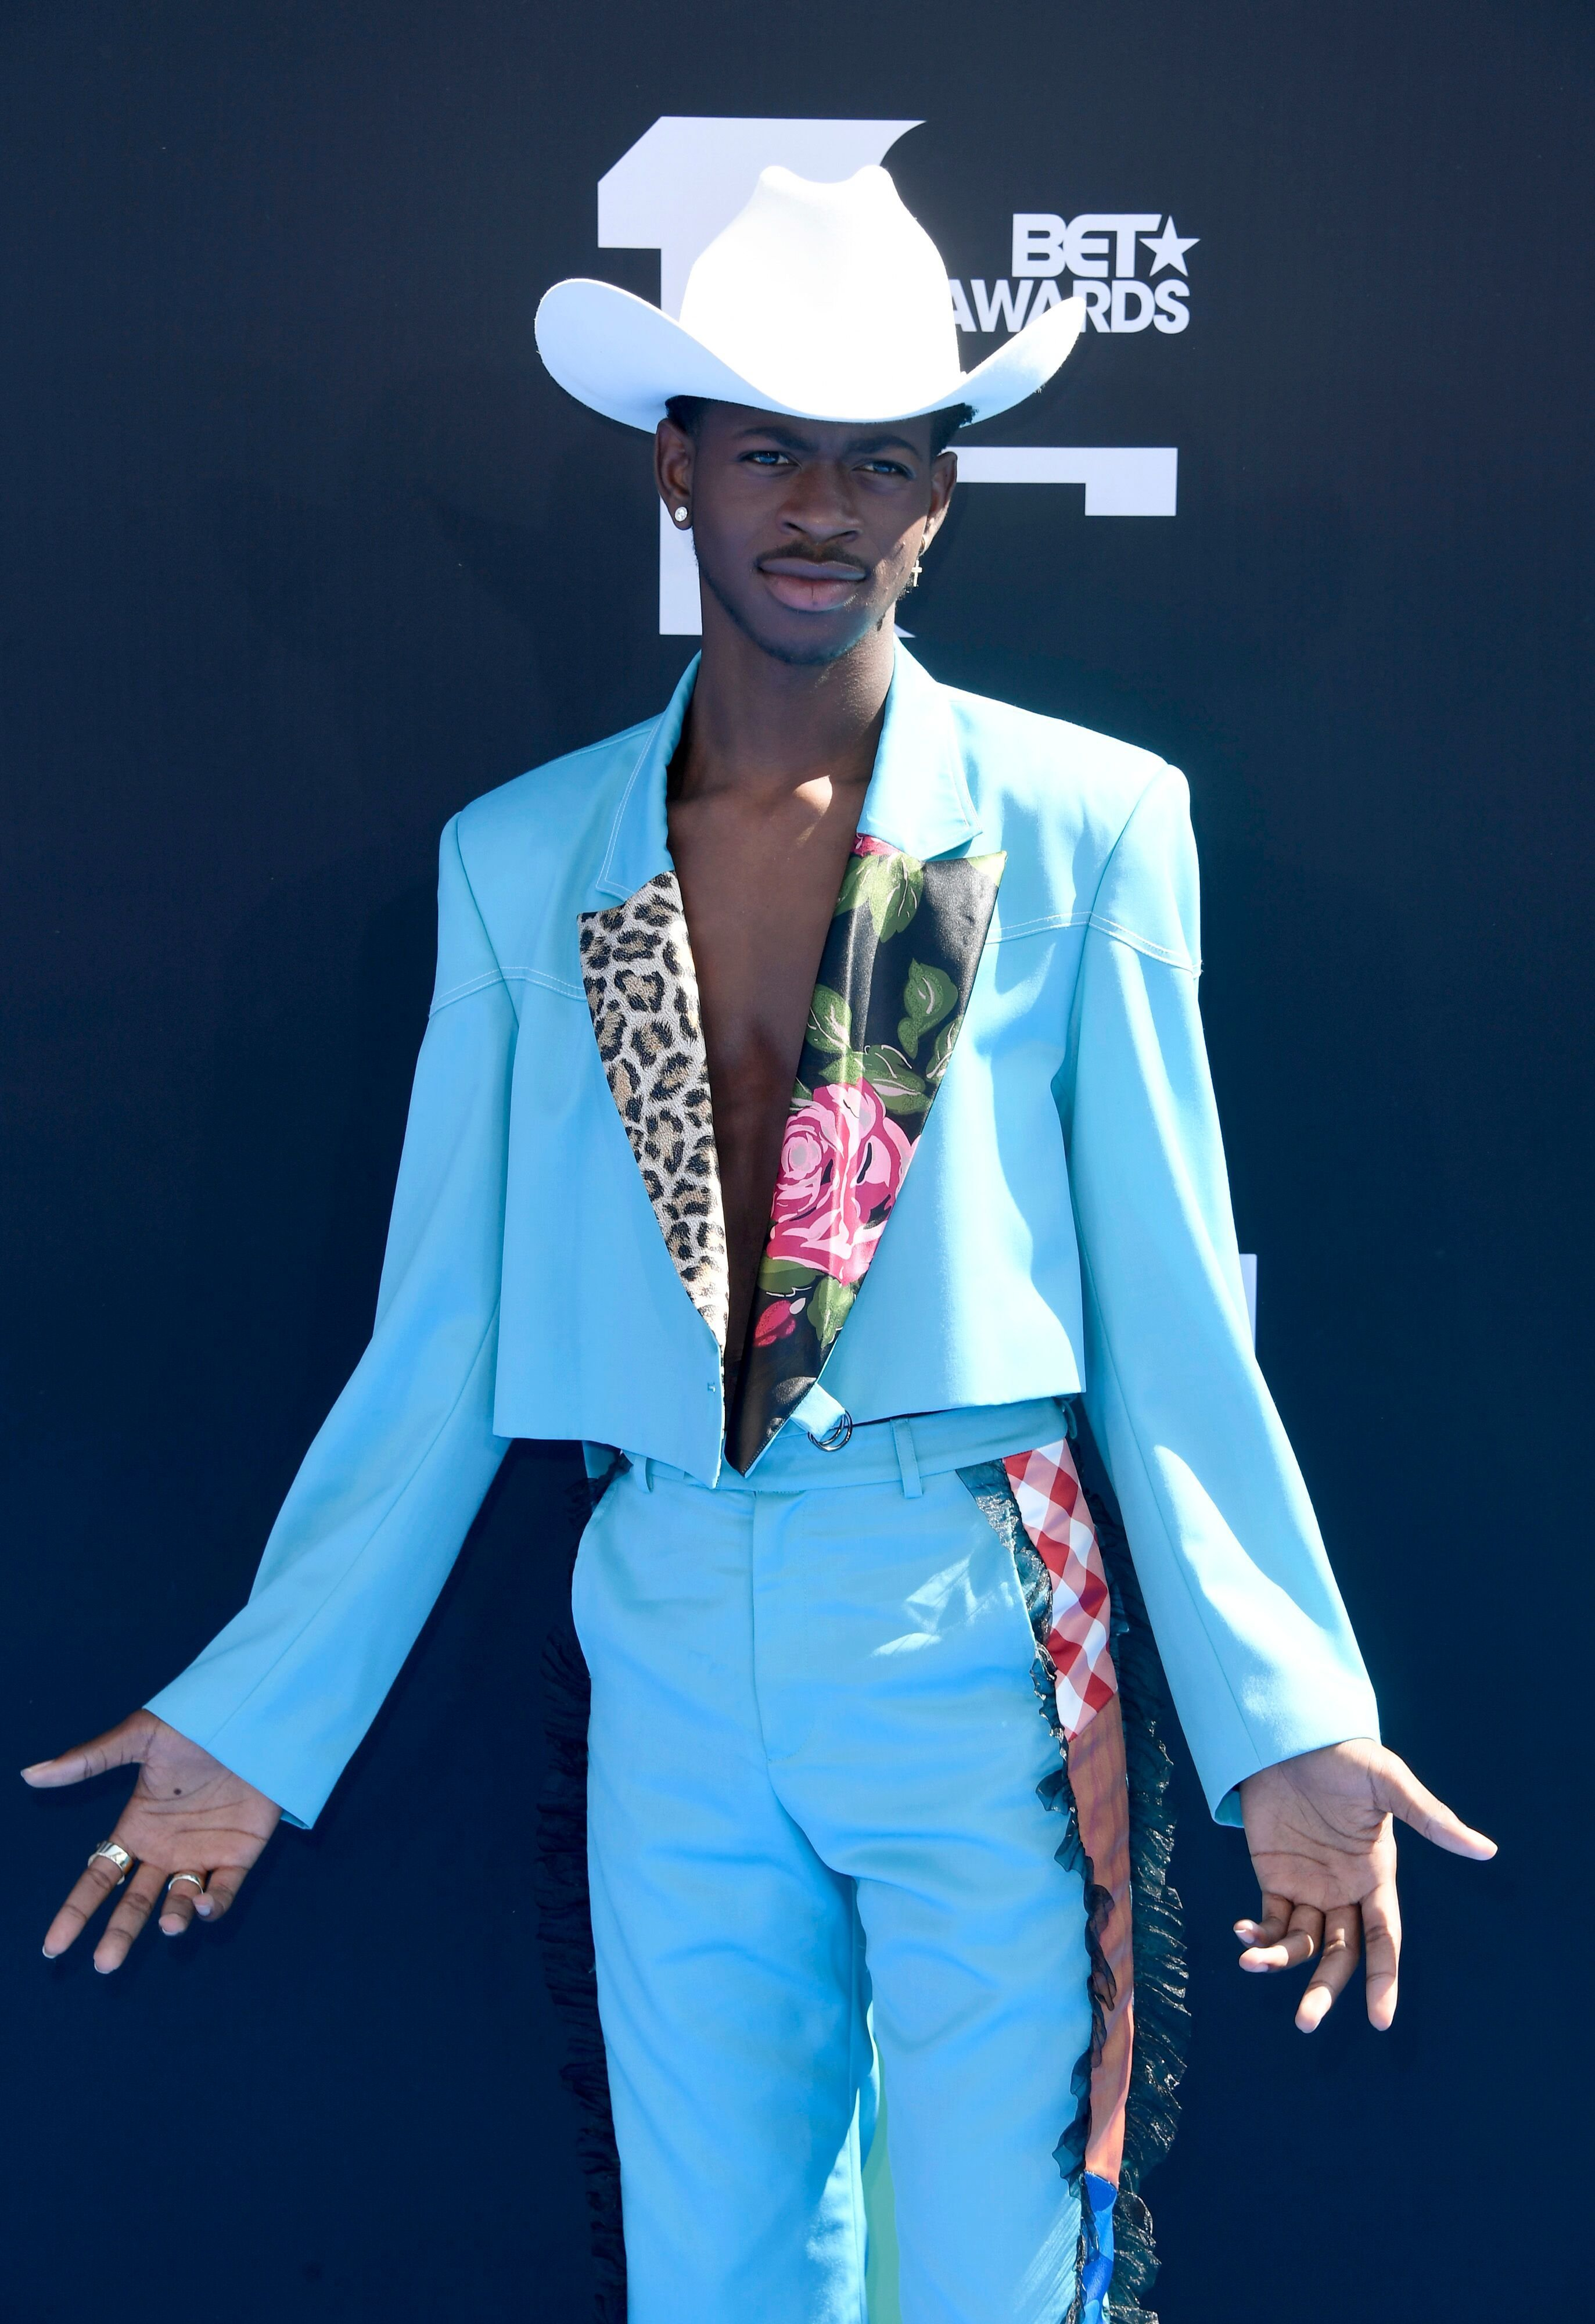 Lil Nas X at the red carpet of the BET Awards | Source: Getty Images/GlobalImagesUkraine